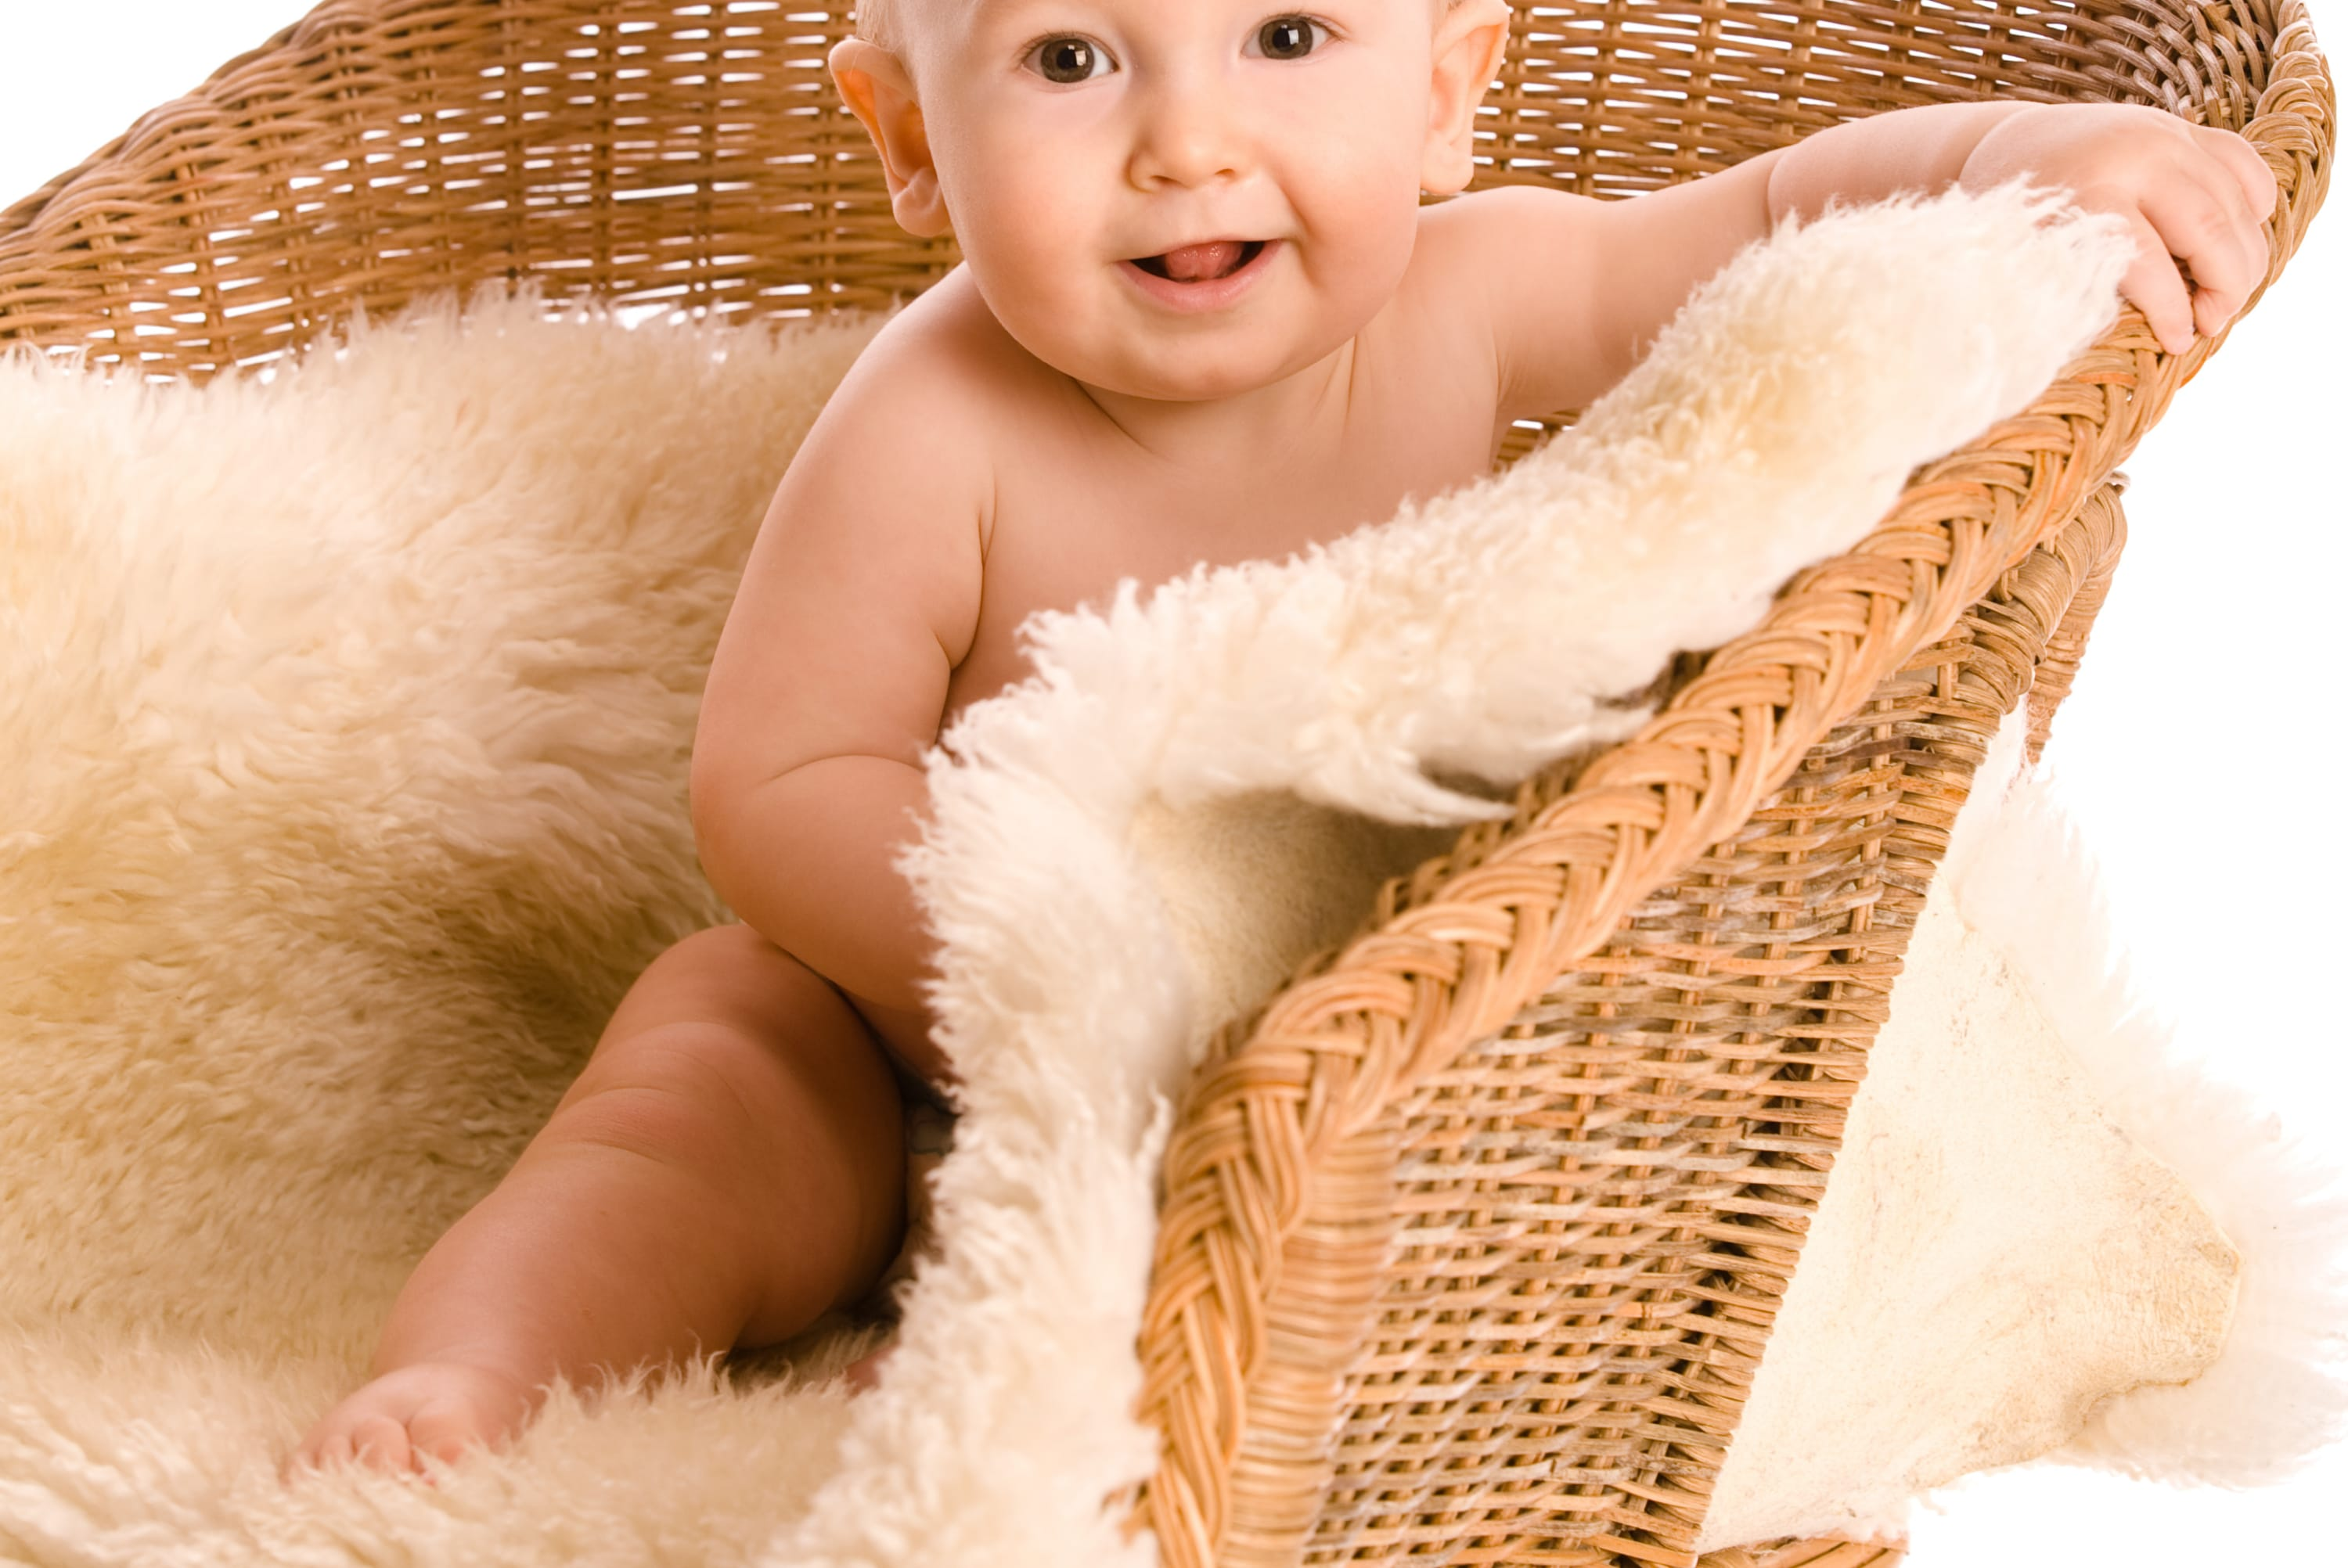 eb6c02b61 How to Baby-Proof Your House - Safety Checklist for Infants   Toddlers